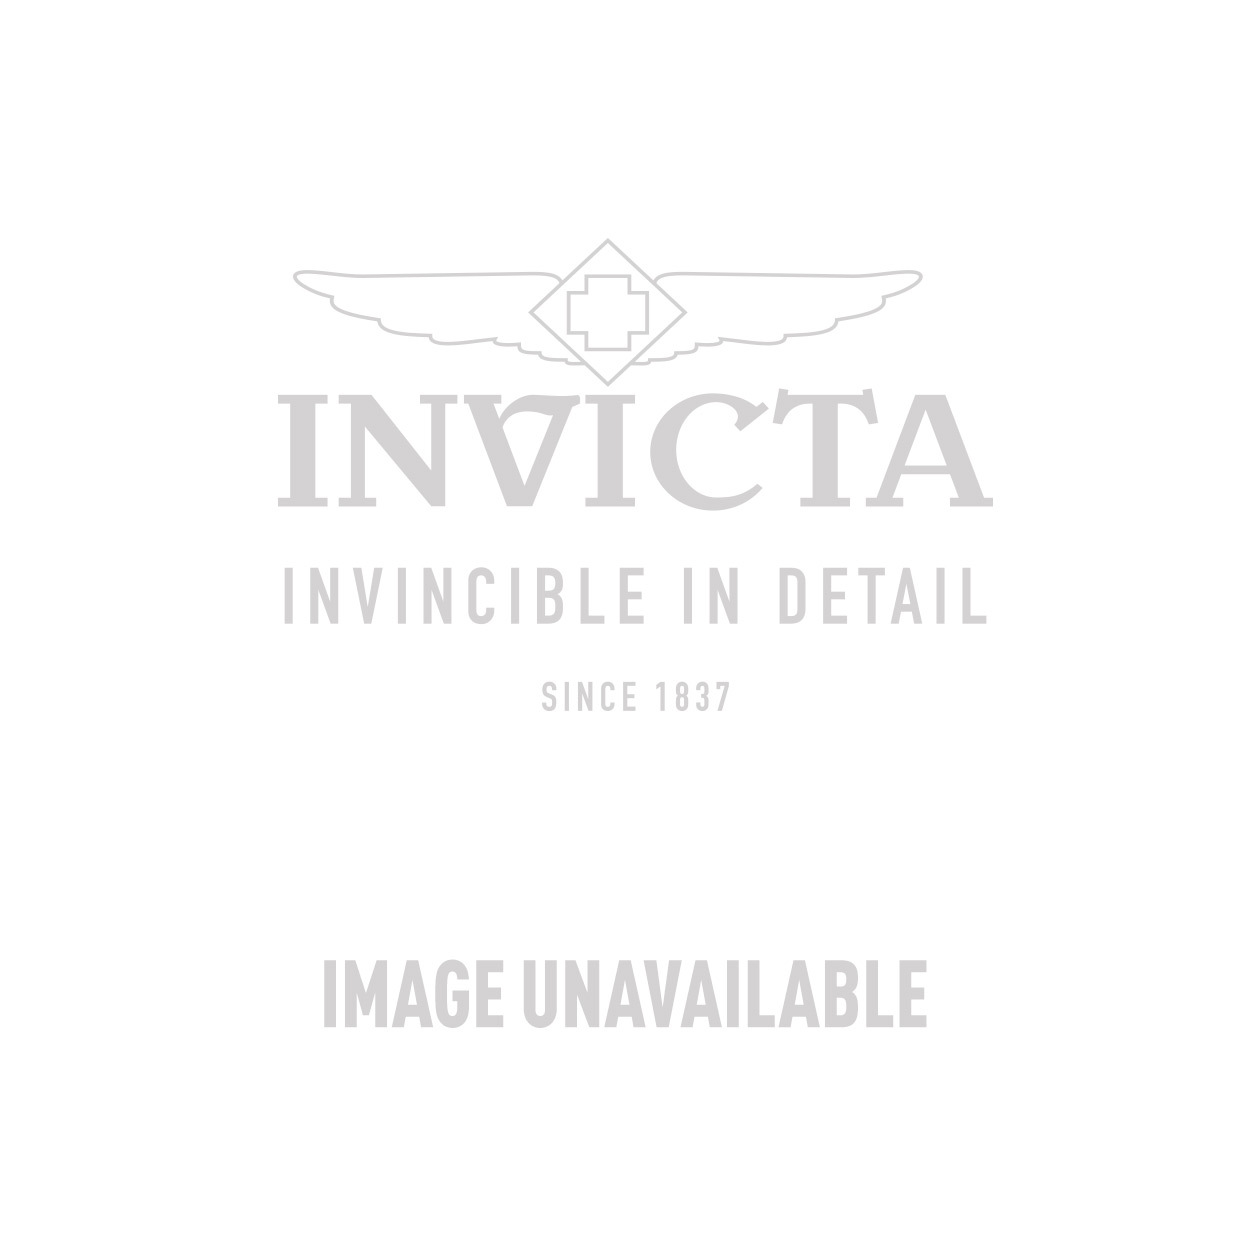 Invicta 20cm Women's Bracelets in Yellow Gold - Model J0285